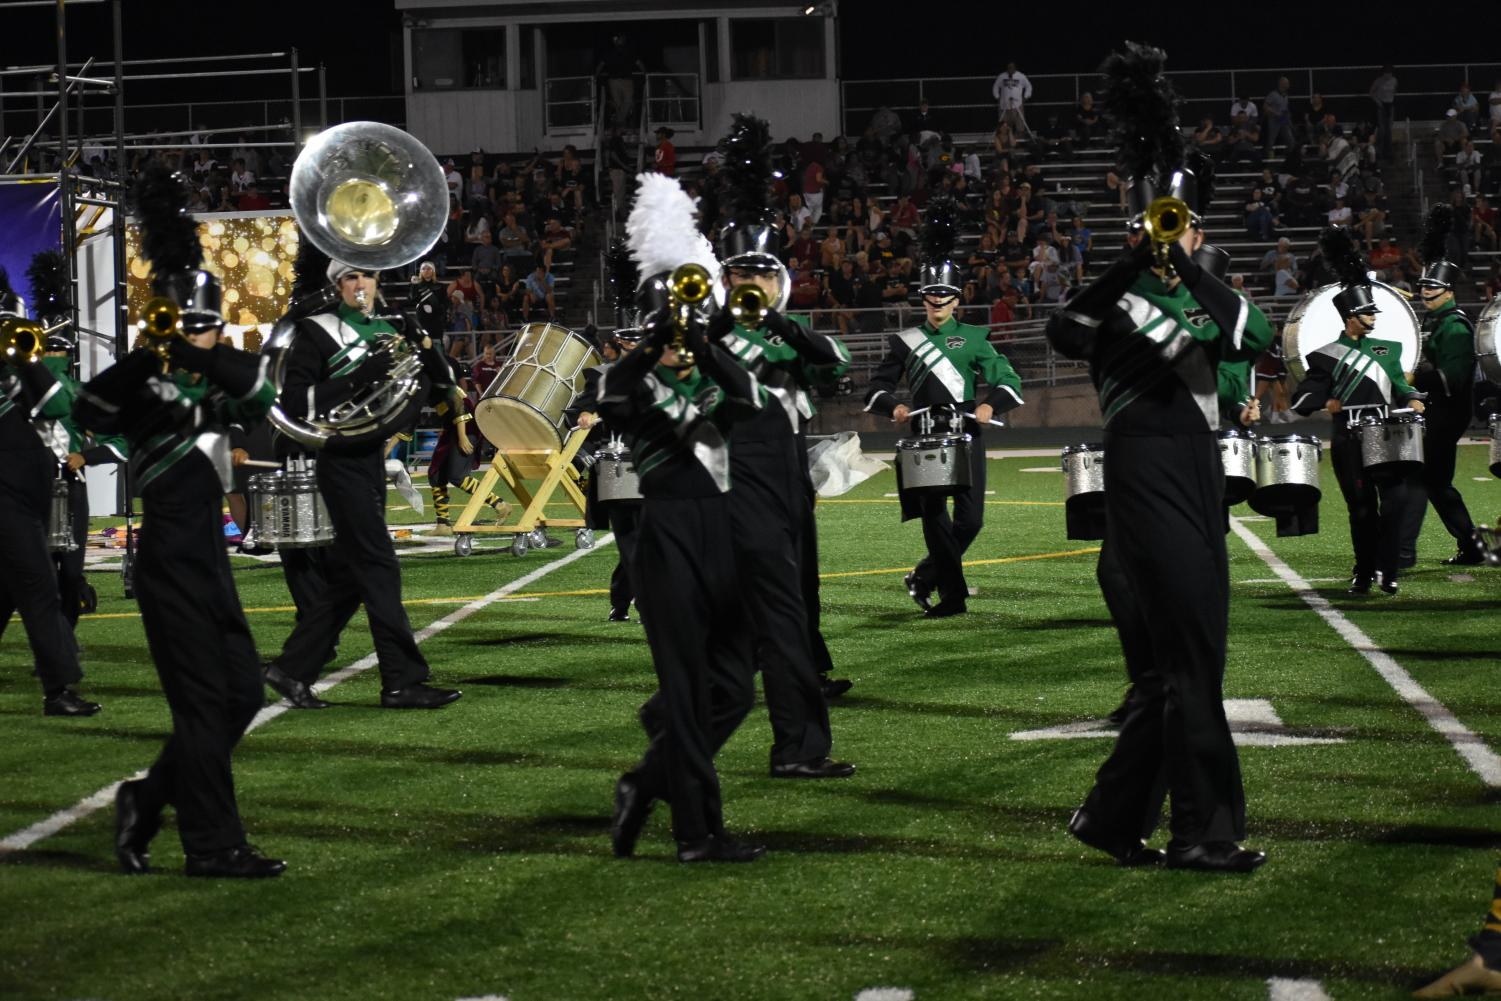 The band performed at Plainfield South and recieved 3rd place for class 3A and best percussion.